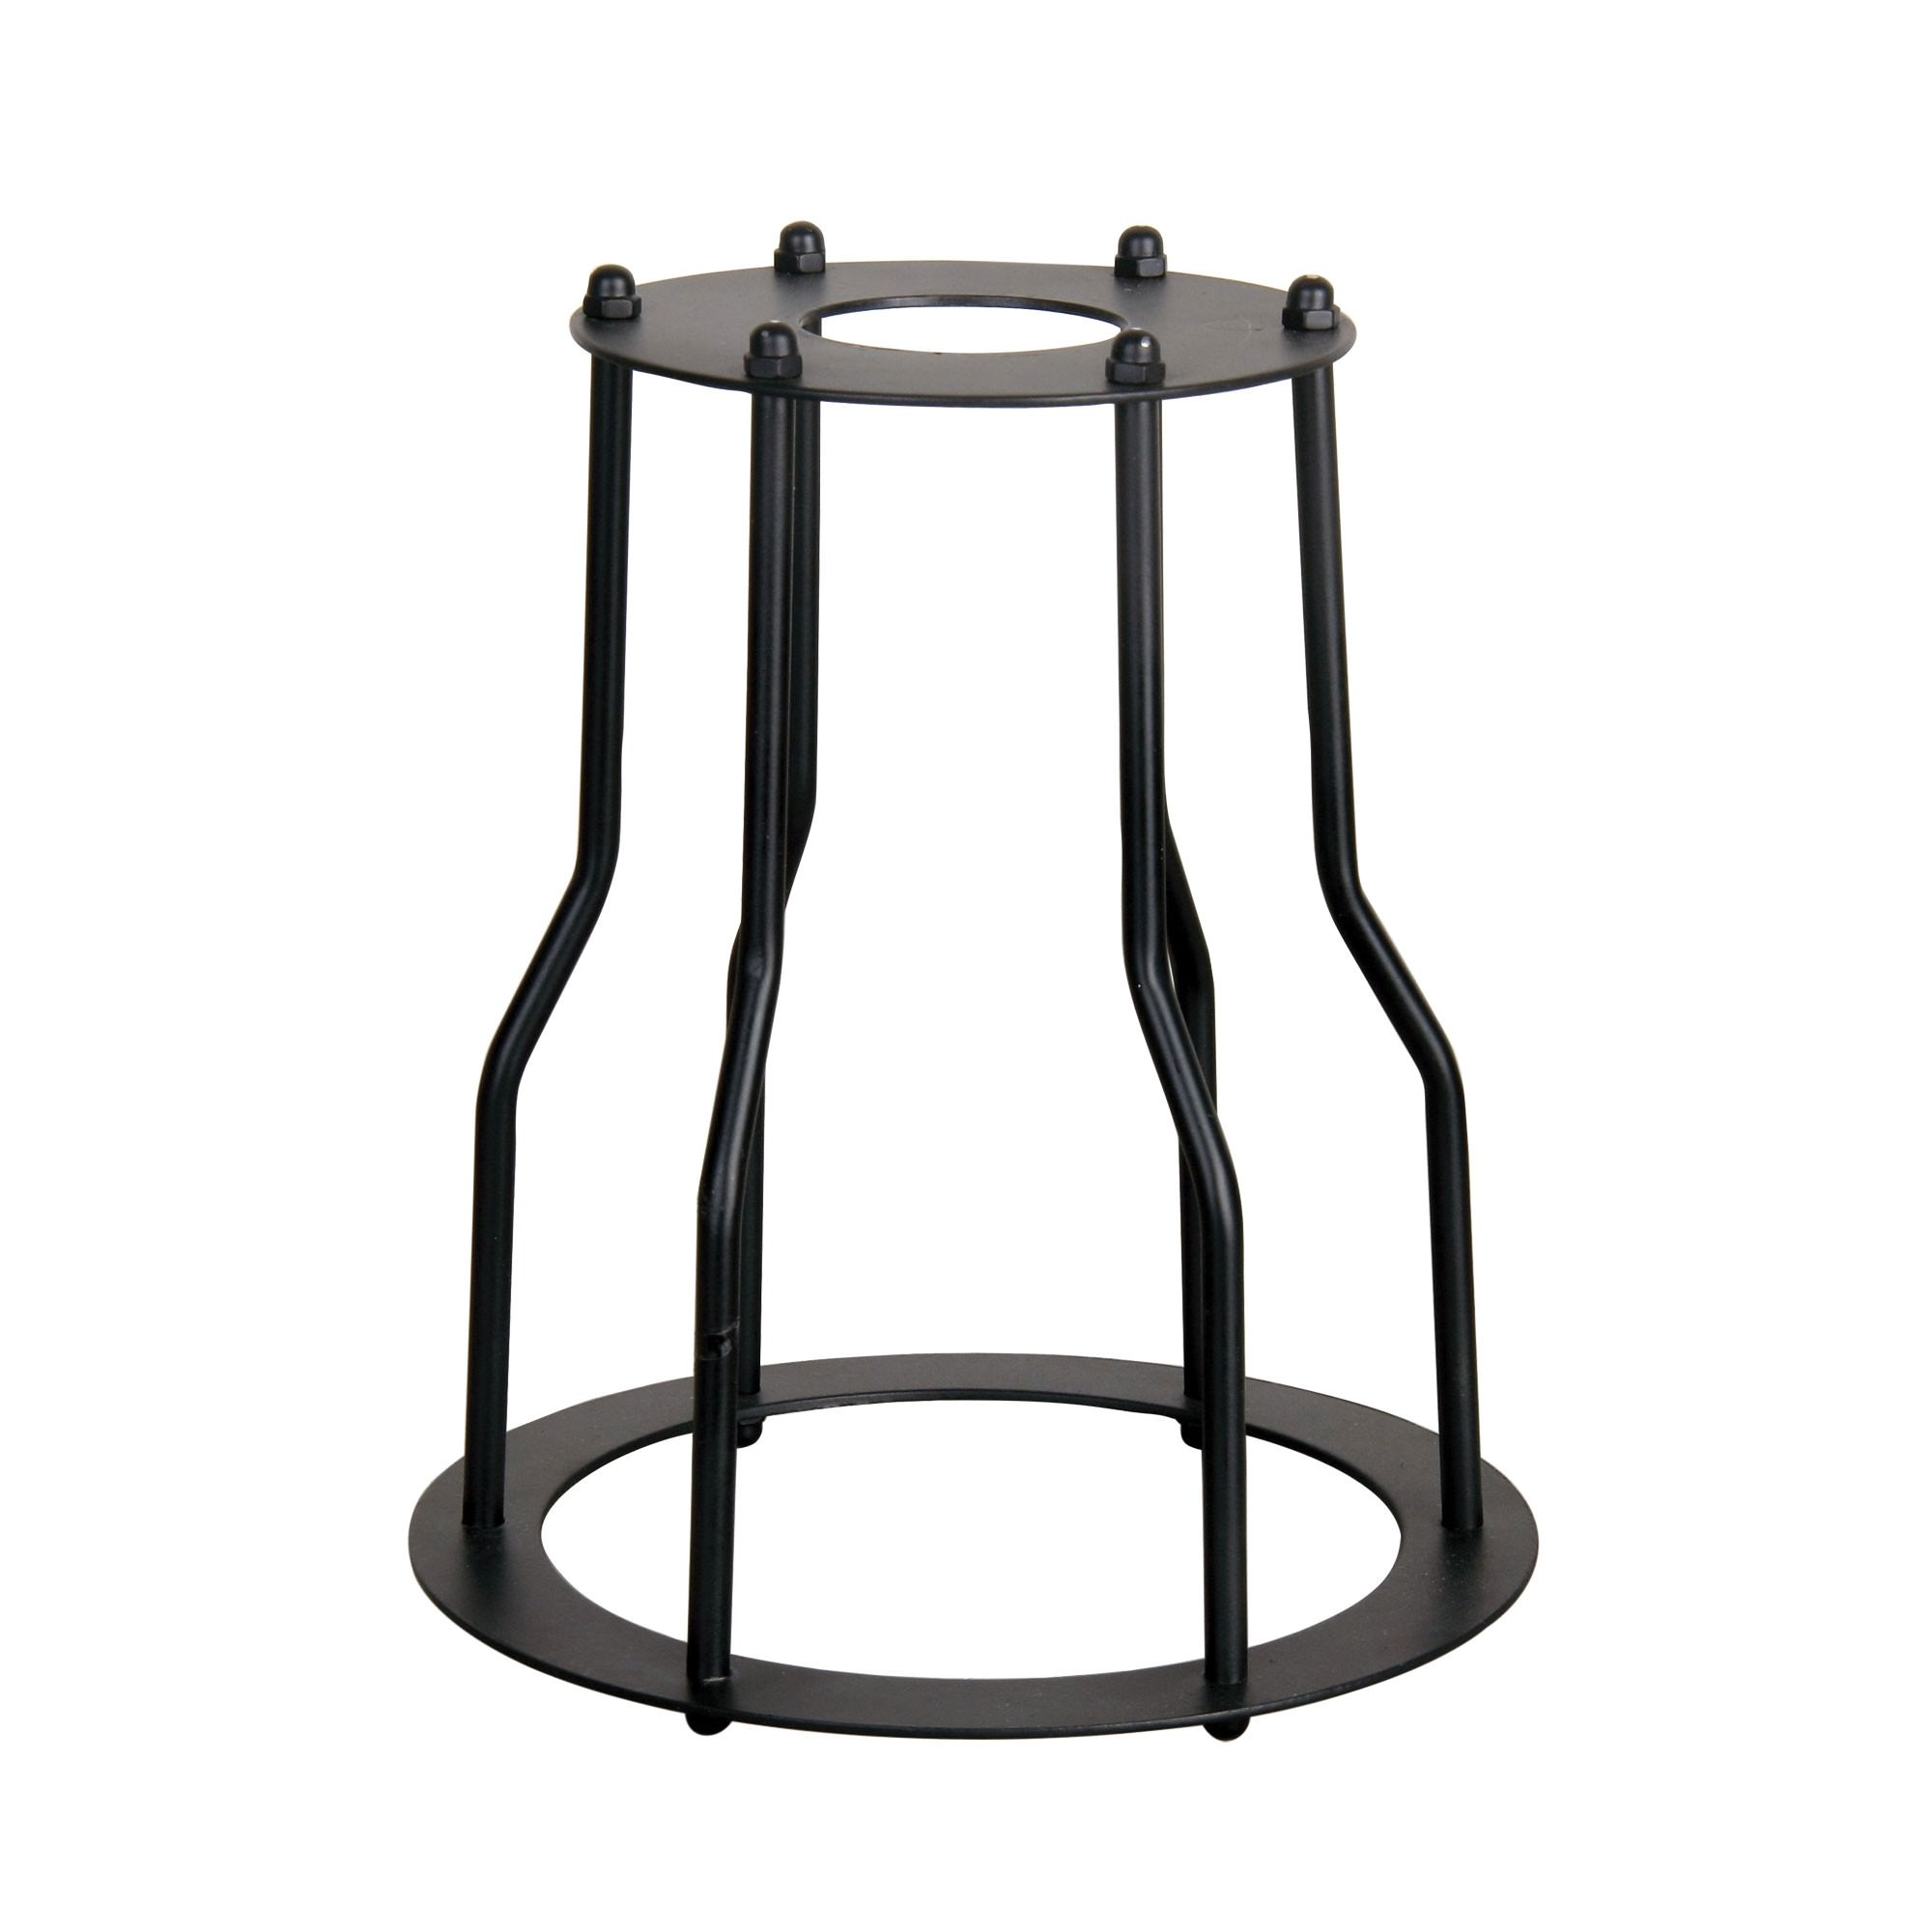 Cage II Metal Wire Pendant Light Shade